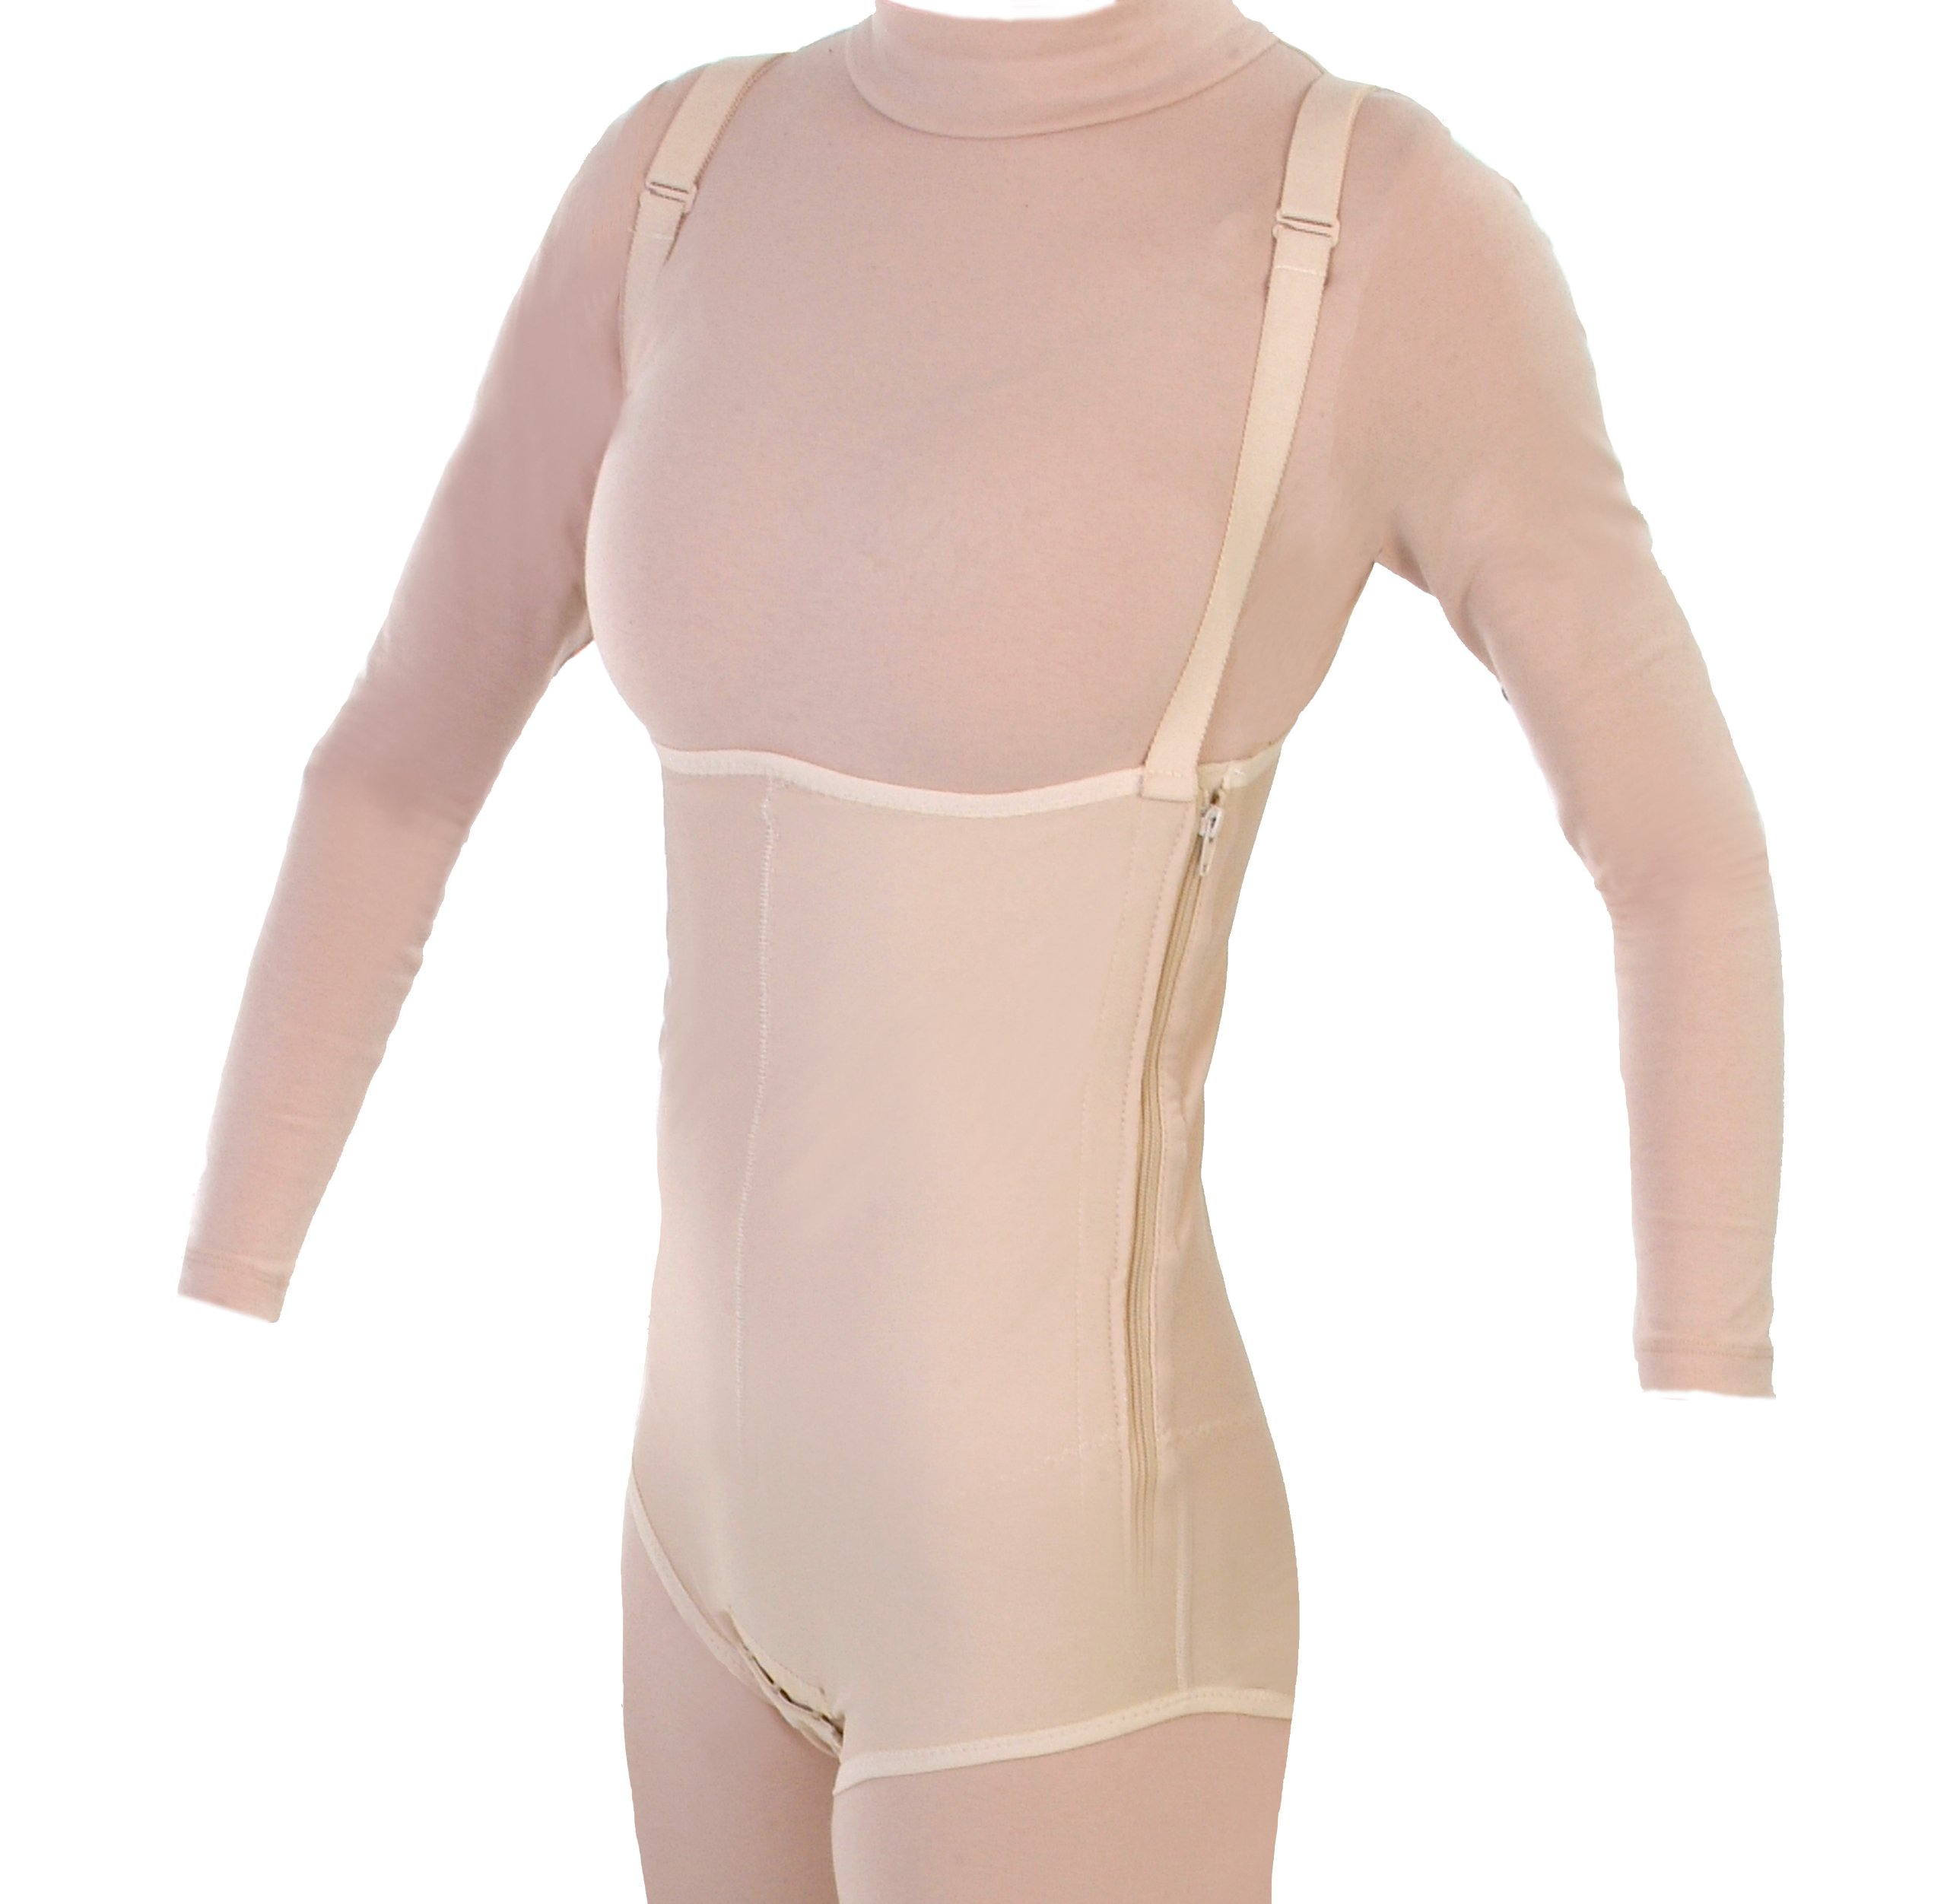 Post Op Tummy Tuck Recovery - Second Stage Compression Garment - Abdominal Liposuction Recovery Garments | ContourMD : Style 37 (Small)